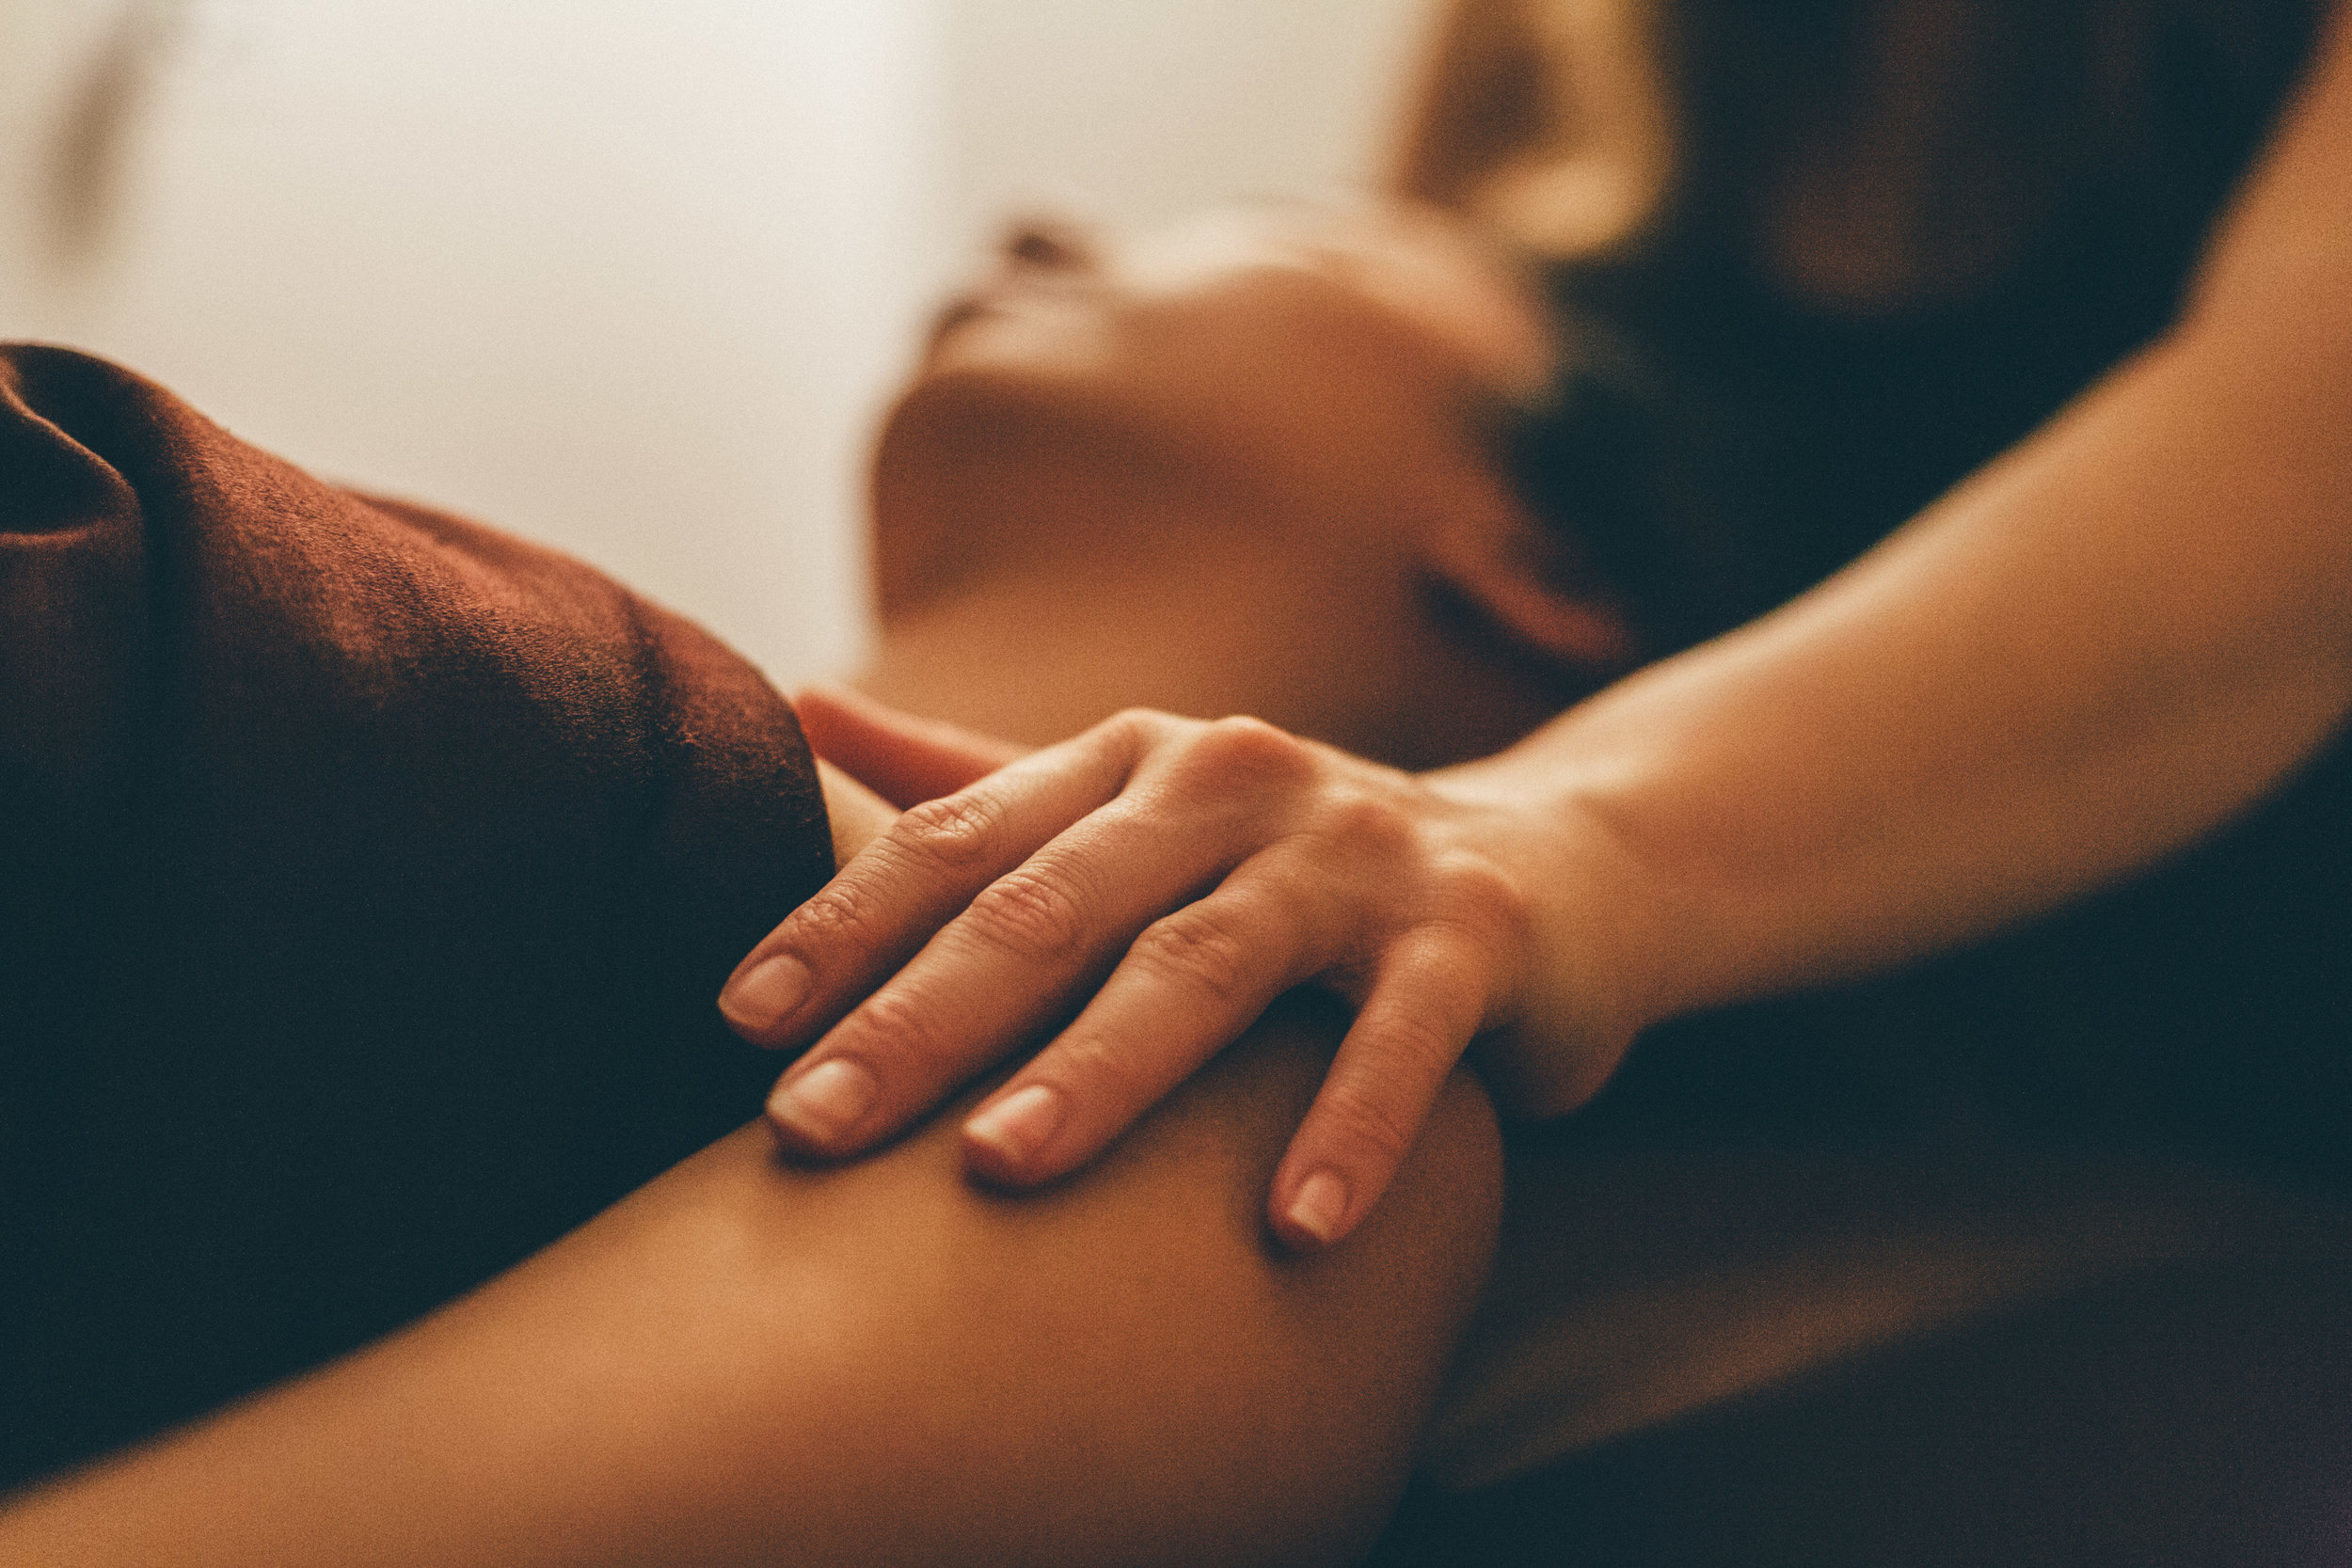 Zeel Massage on Demand - Your body deserves this. Book a same-day, in-home massage with the best licensed and vetted massage therapists.